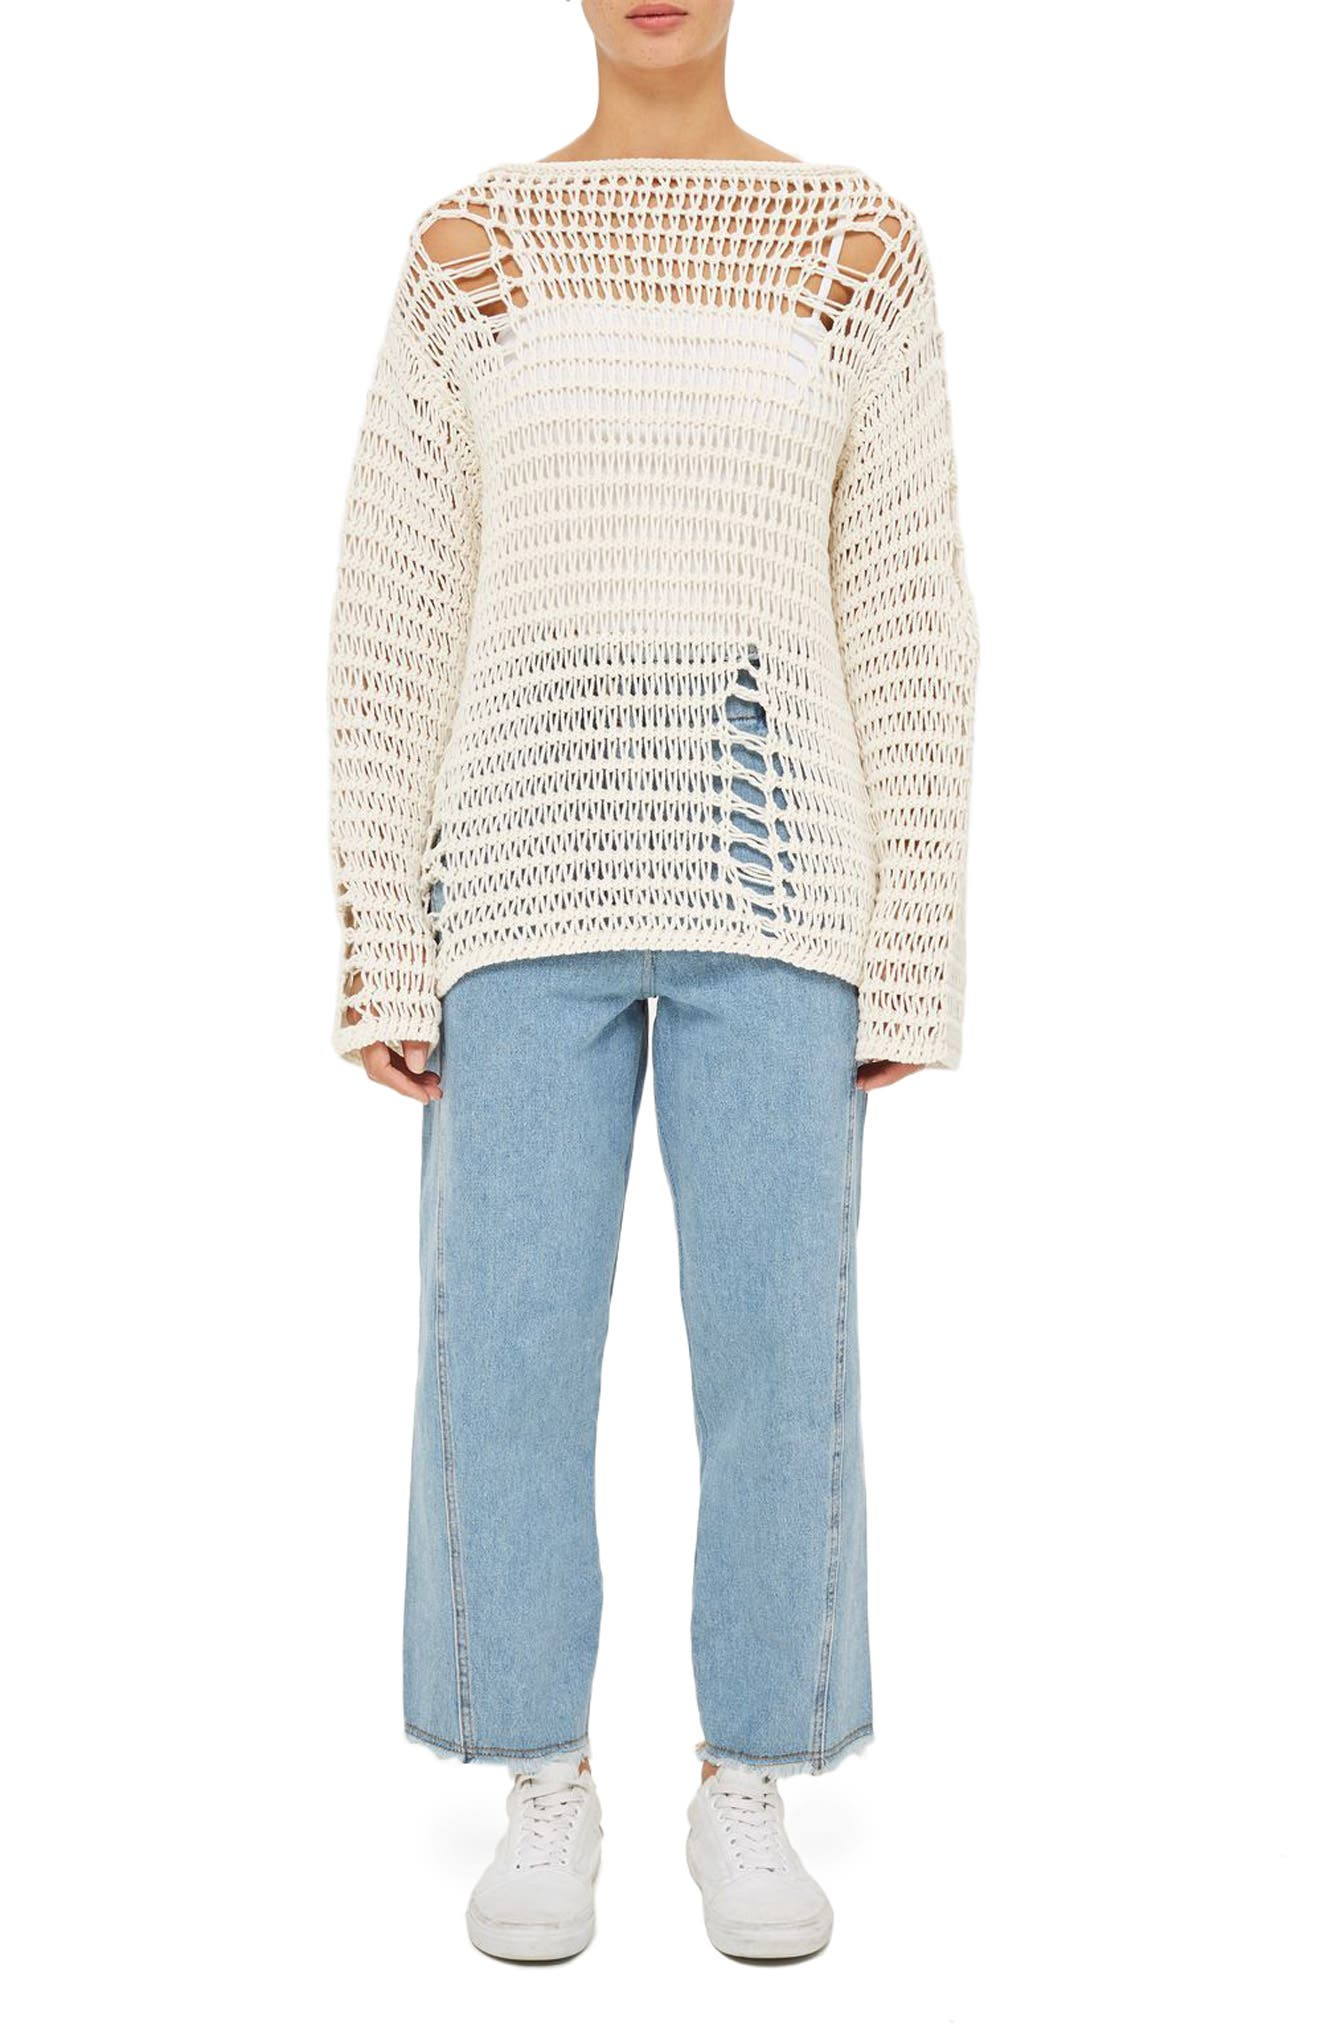 Topshop Boutique Distressed Knit Sweater